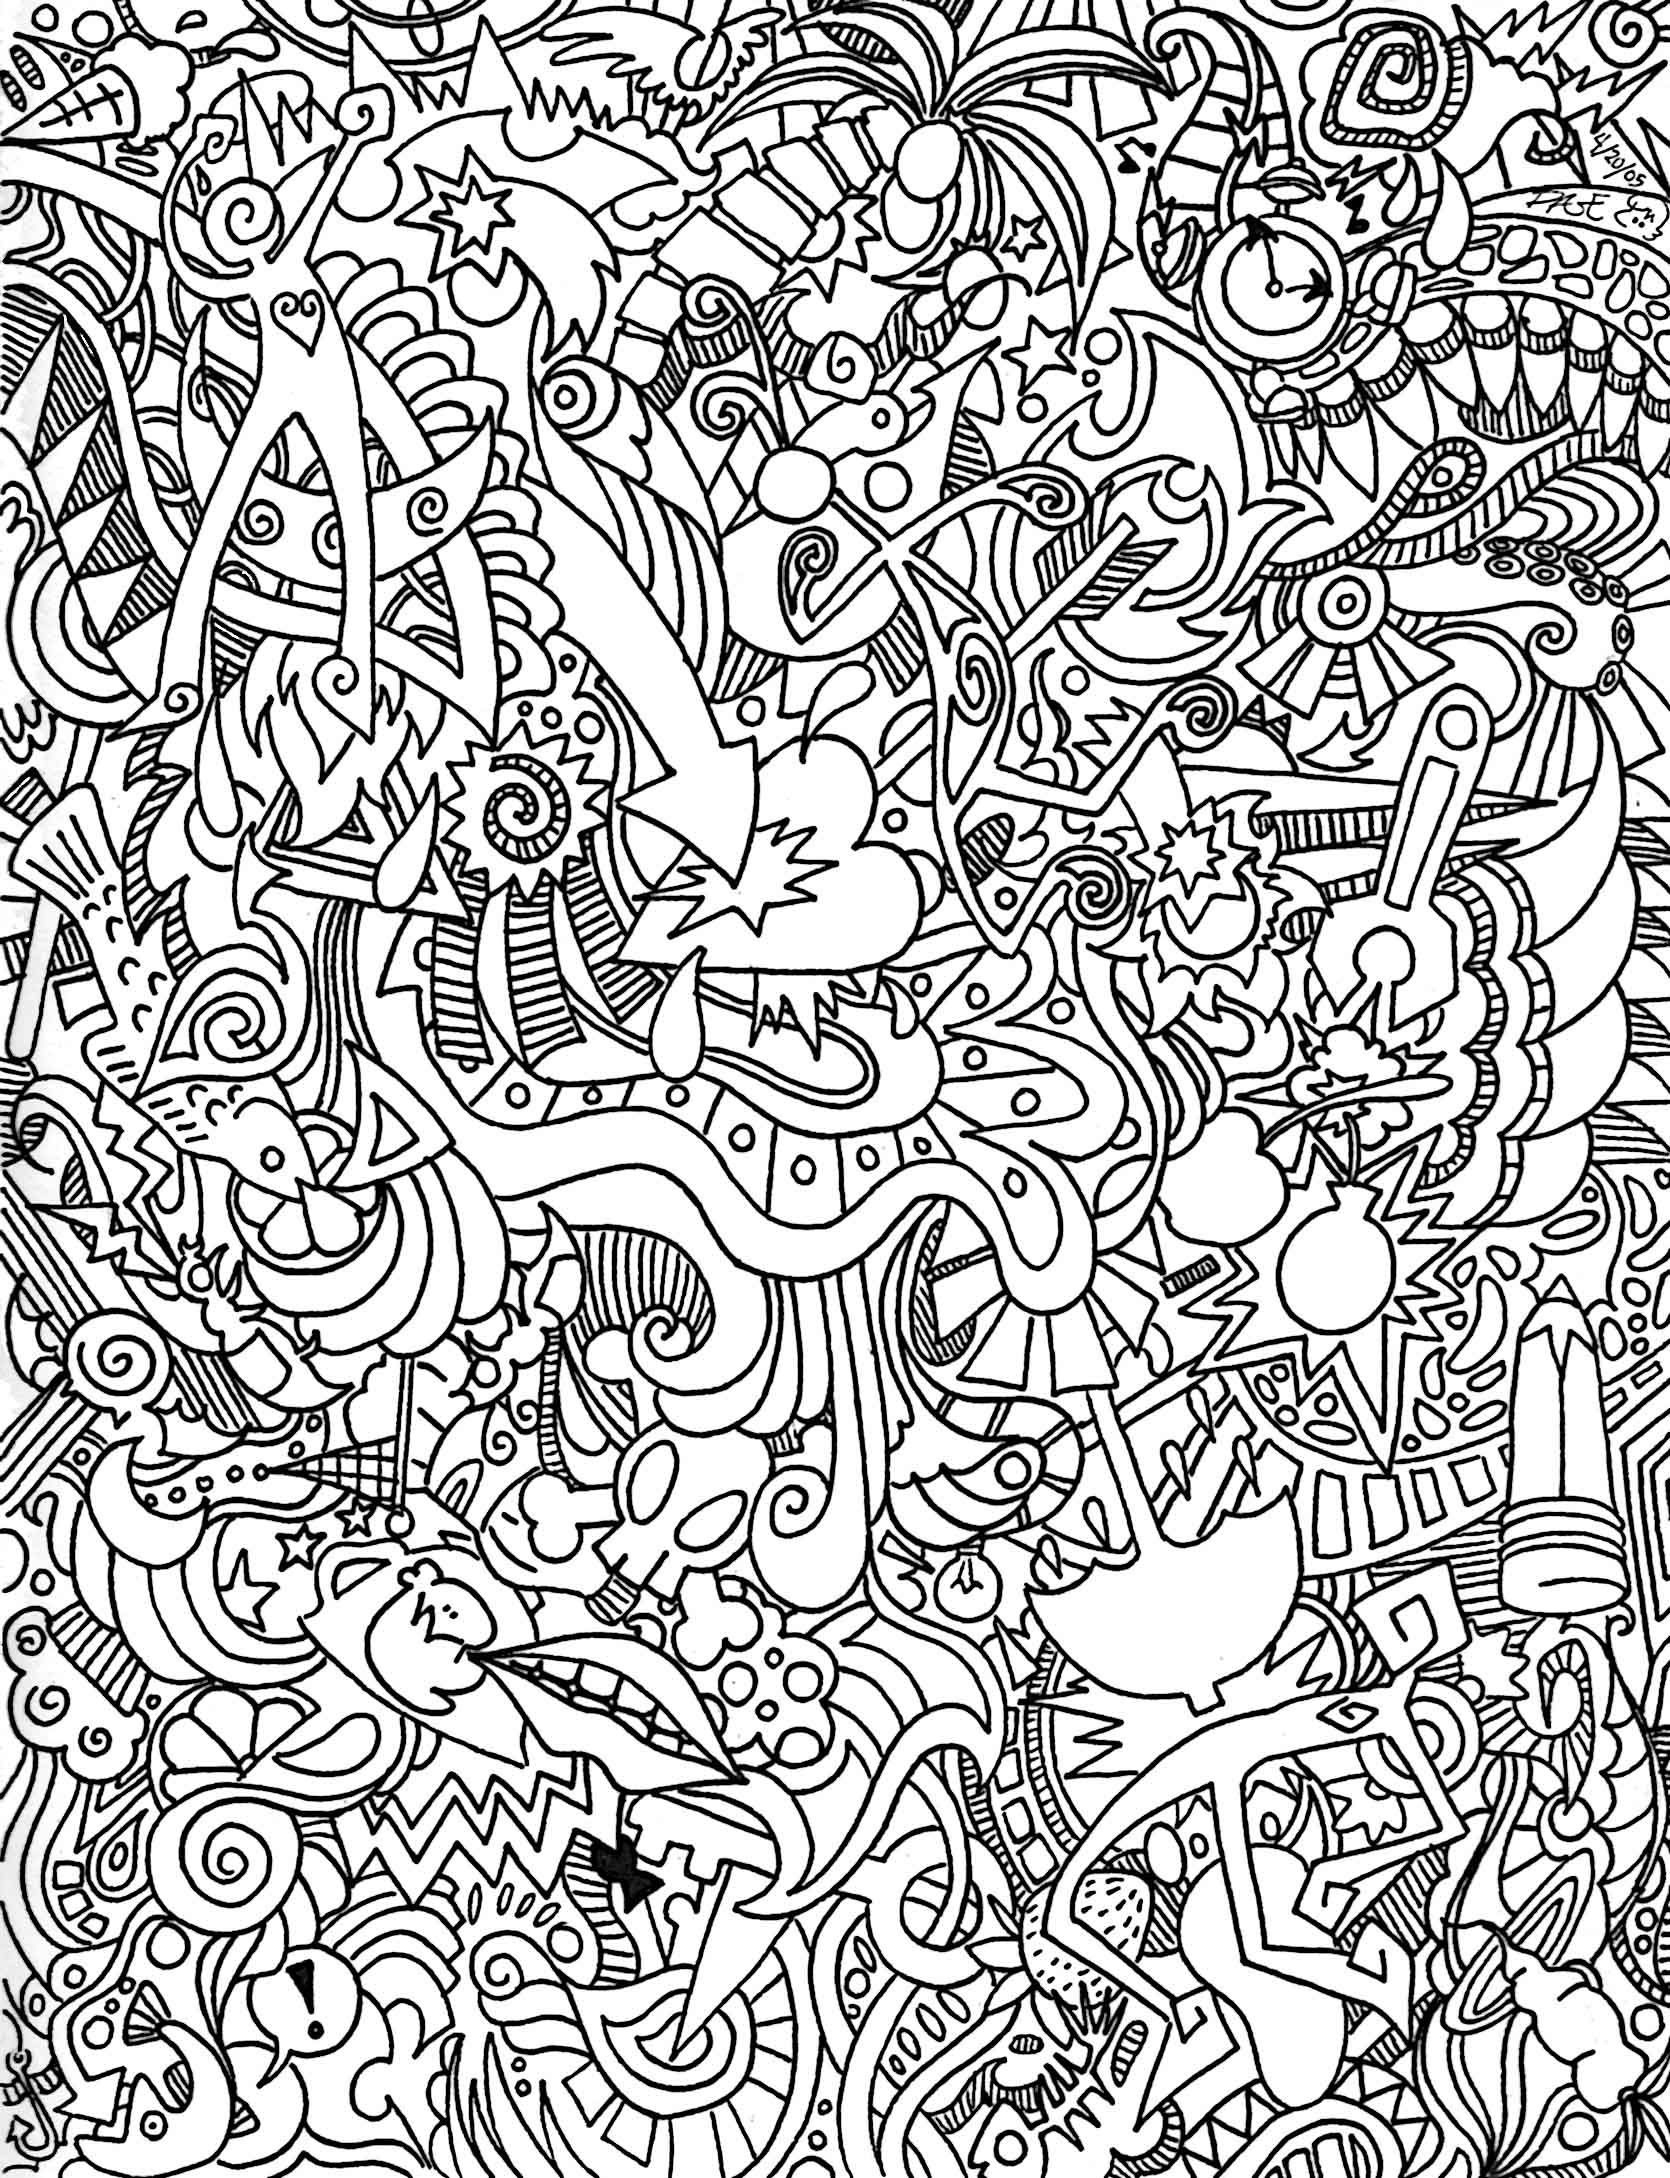 Psychedelic Coloring Pages To Download And Print For Free   Adult - Free Printable Trippy Coloring Pages